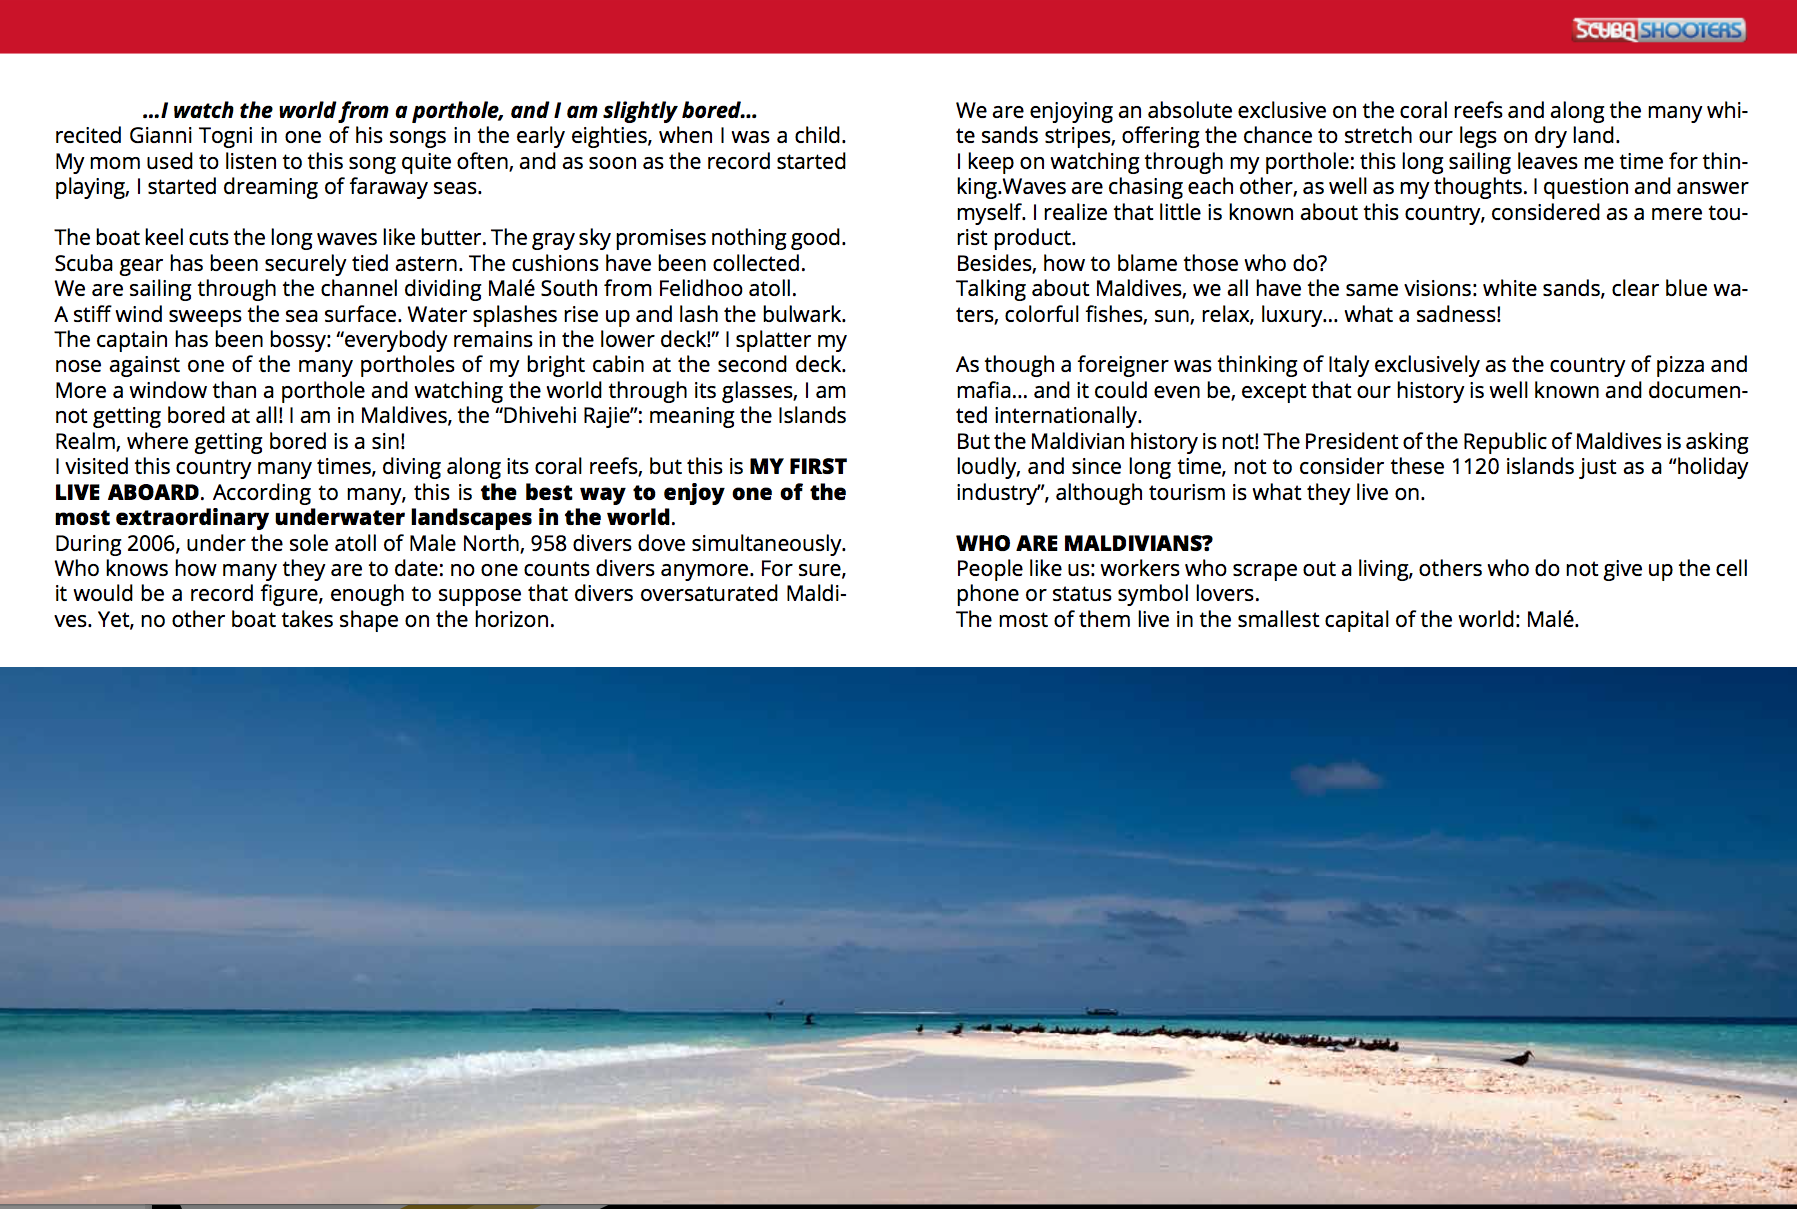 Maldives, Dhivehi Rajee, pictures and words by Isabella Maffei